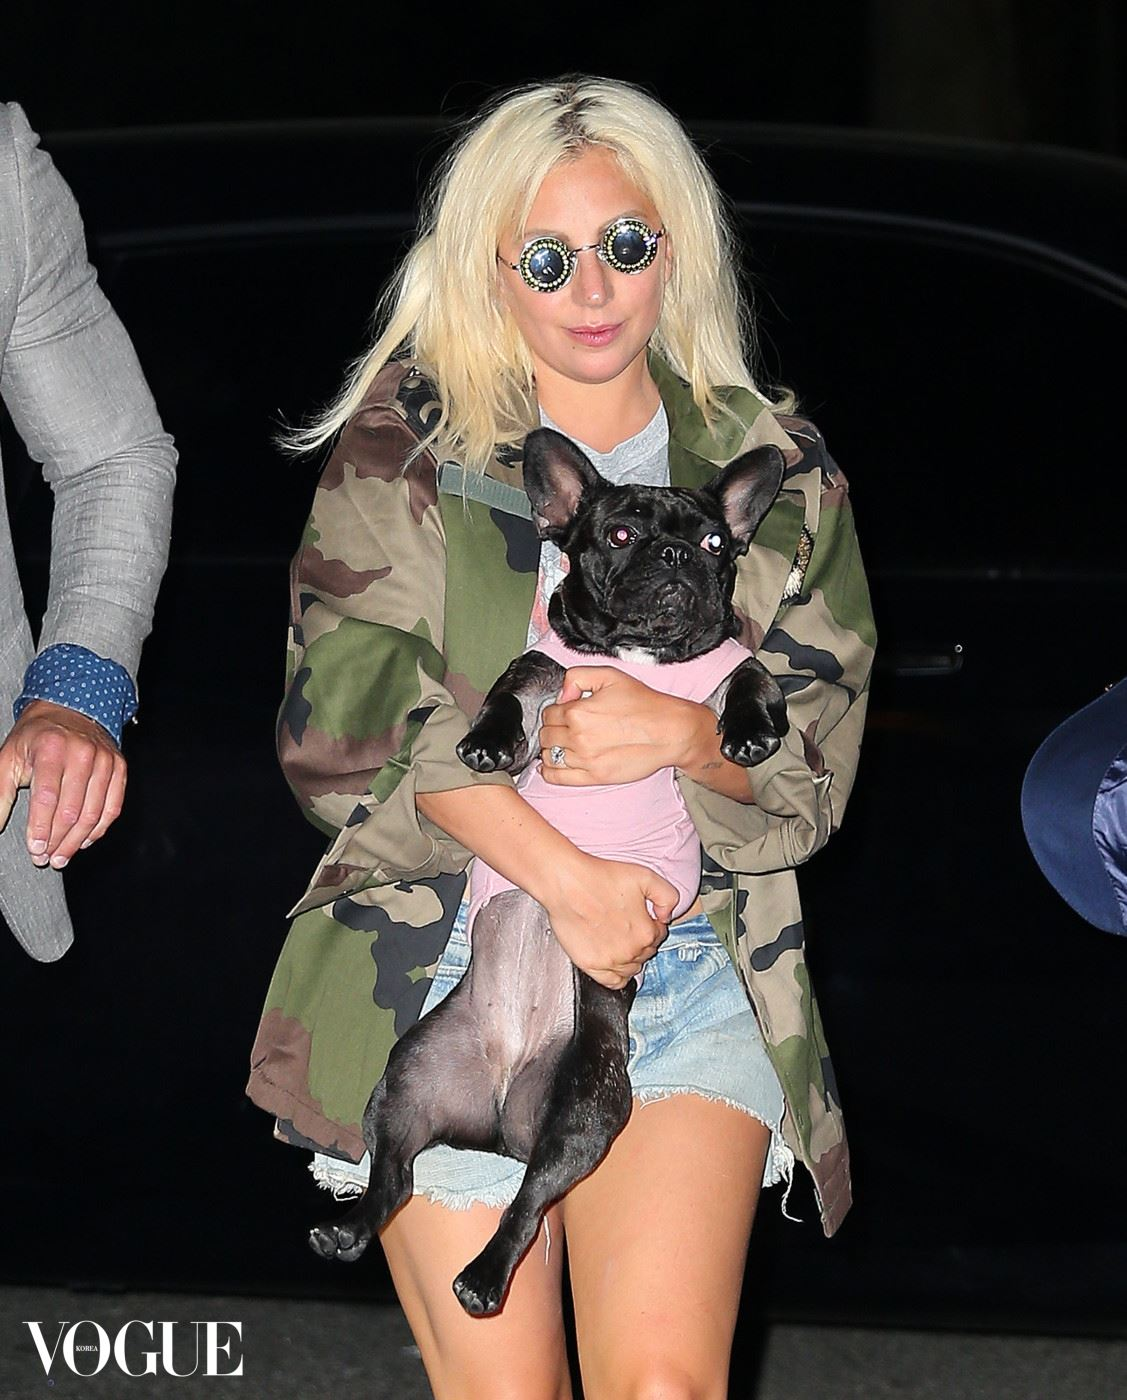 Lady Gaga appears to stumble down the stairs while departing her show at Radio City in NYC with her dog Asia. Pictured: Lady Gaga Ref: SPL1060433  220615   Picture by: XactpiX / Splash News Splash News and Pictures Los Angeles:	310-821-2666 New York:	212-619-2666 London:	870-934-2666 photodesk@splashnews.com